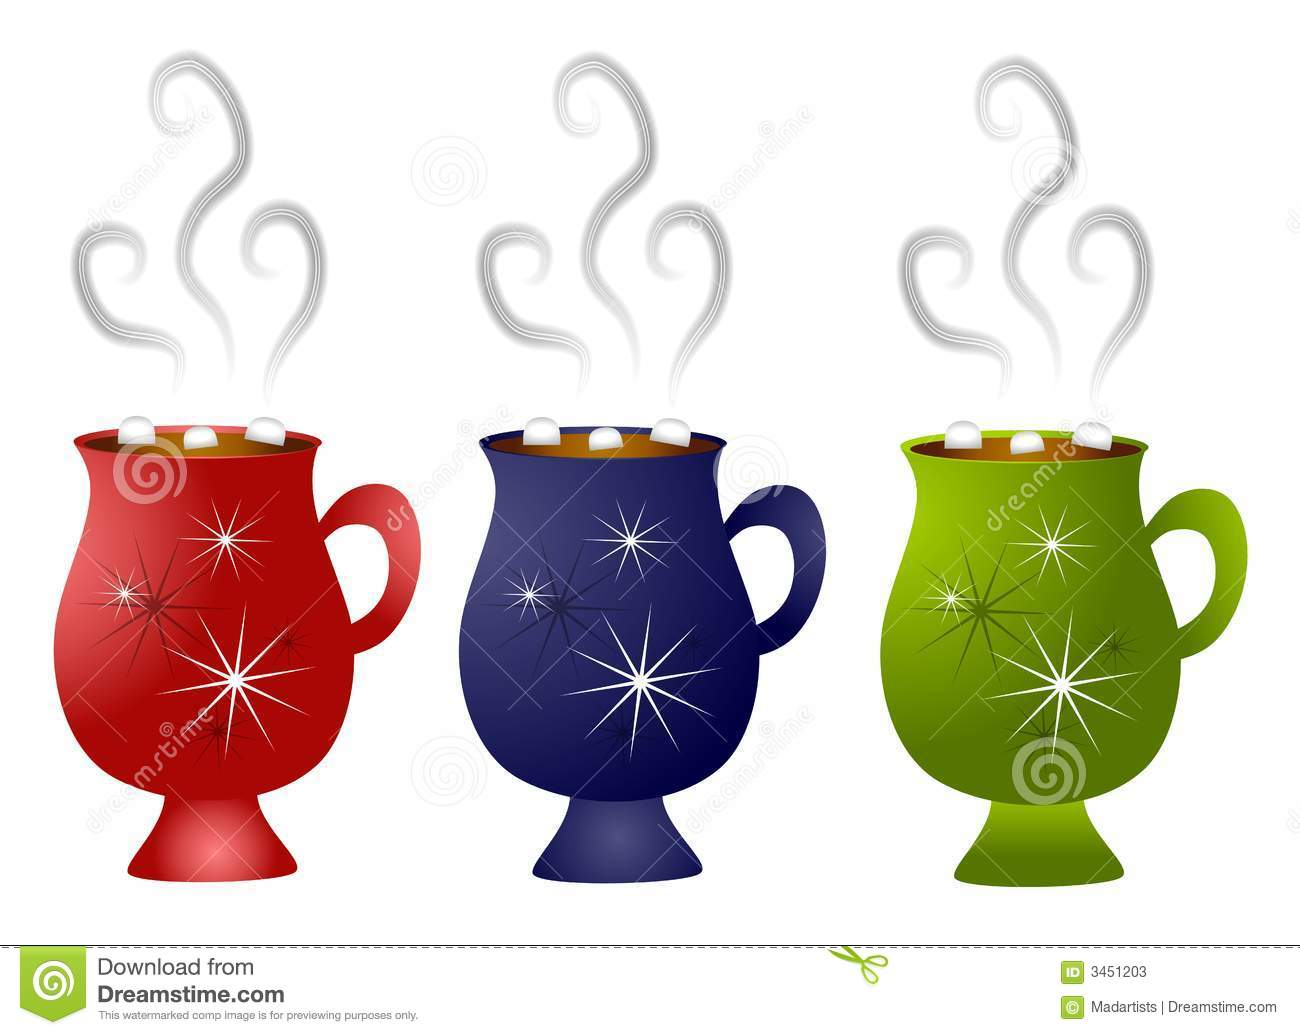 Image Result For Christmas Hot Chocolate Mugs